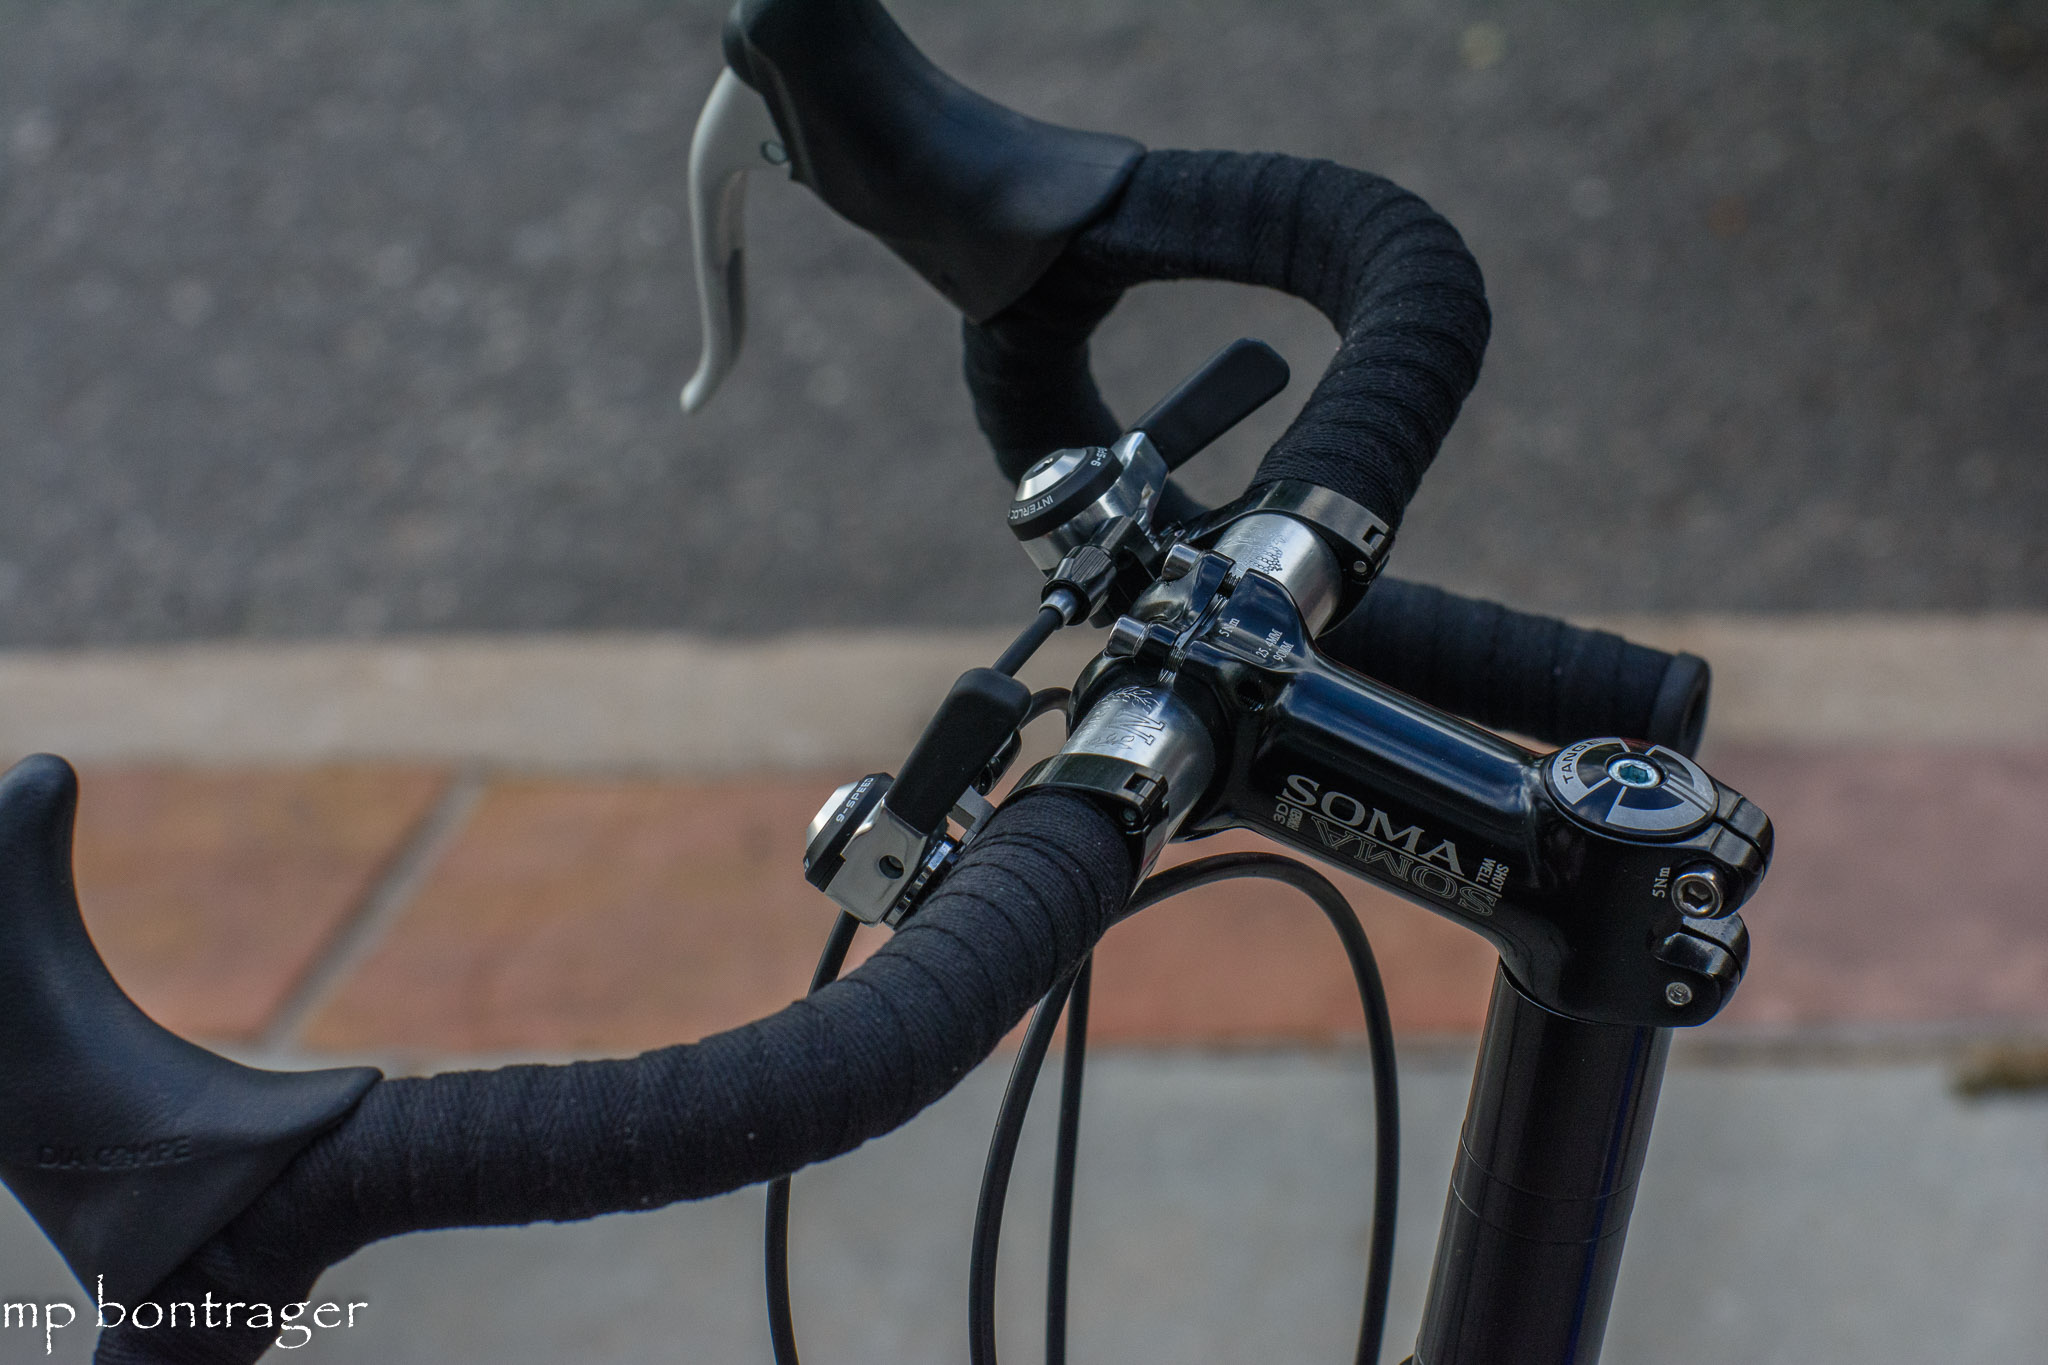 IRD thumb shifters, tange headset, Soma stem